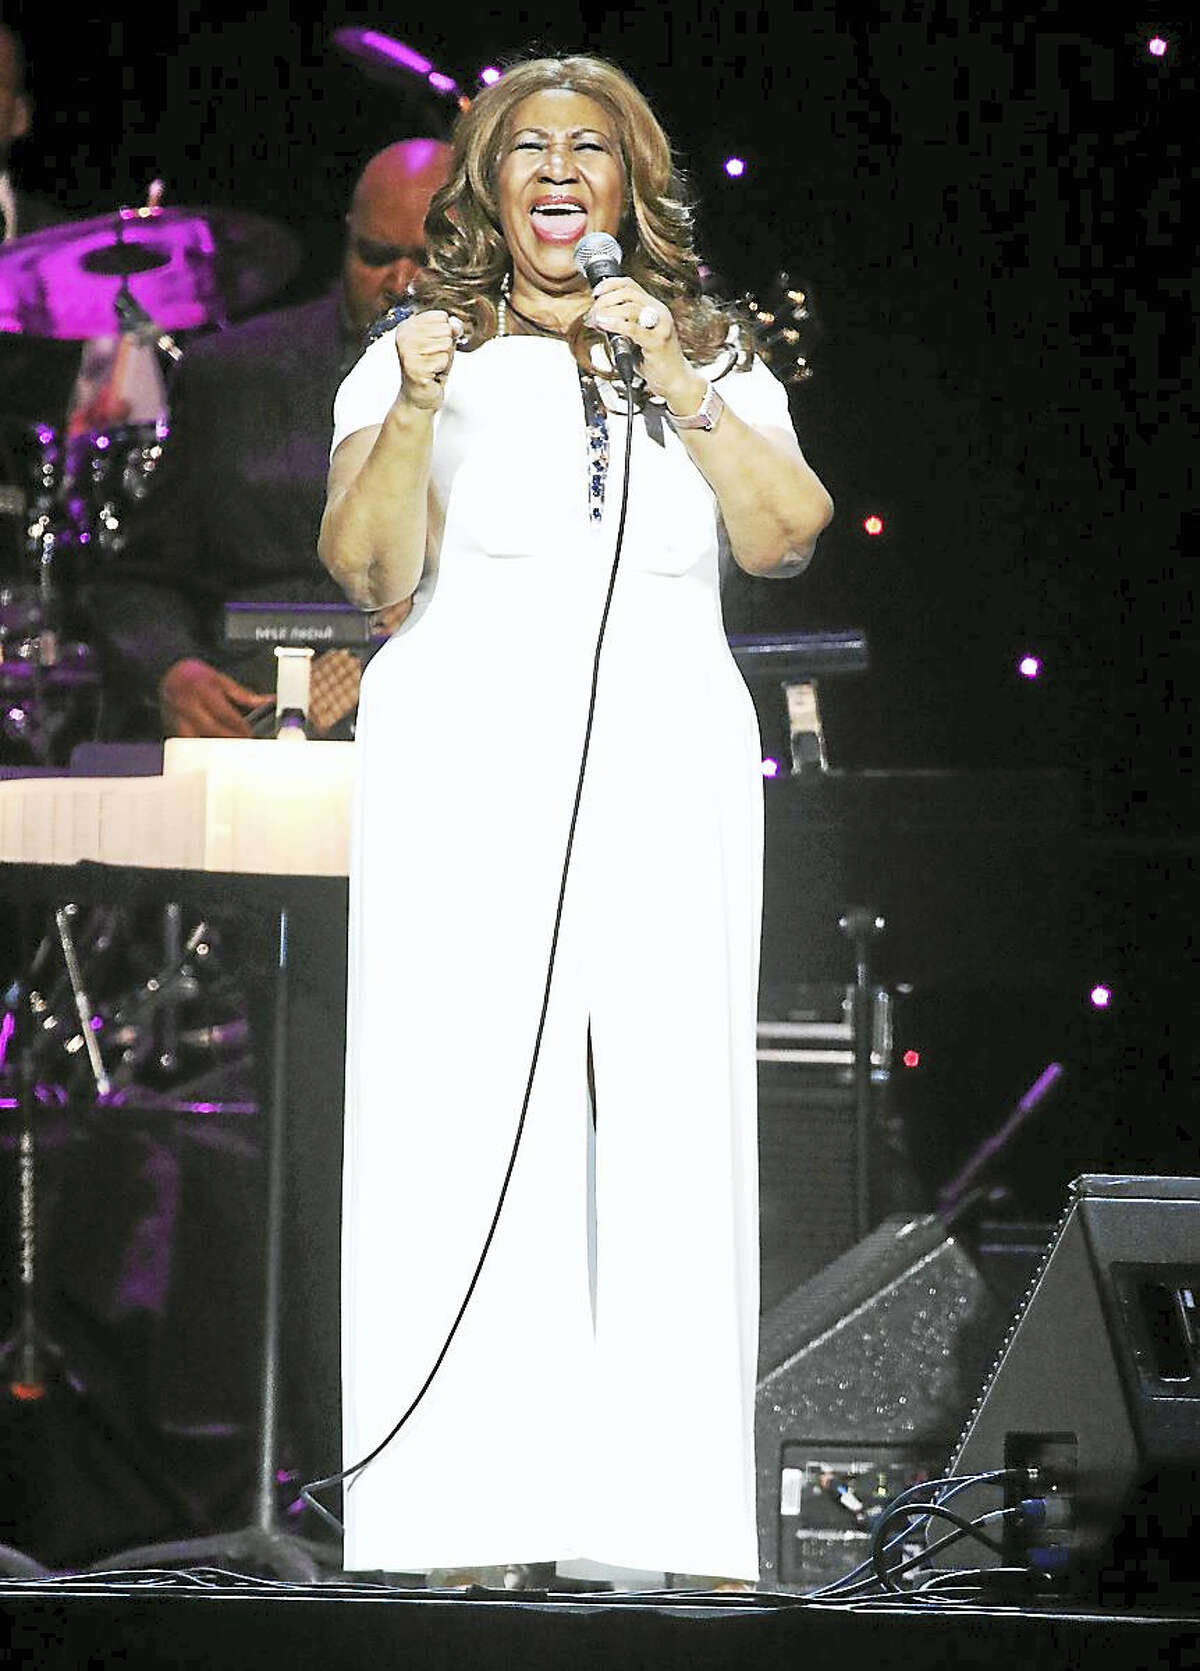 Photo by John AtashianSinger and musician Aretha Franklin performs for a sold-out crowd of nearly 9,000 fans at Mohegan Sun Arena Jan. 1. Franklin has won a total of 18 Grammy Awards and is one of the best selling artists of all time, having sold over 75 million records worldwide. Franklin has been honored throughout her career including a 1987 induction into the Rock and Roll Hall of Fame, in which she became the first female performer to be inducted.